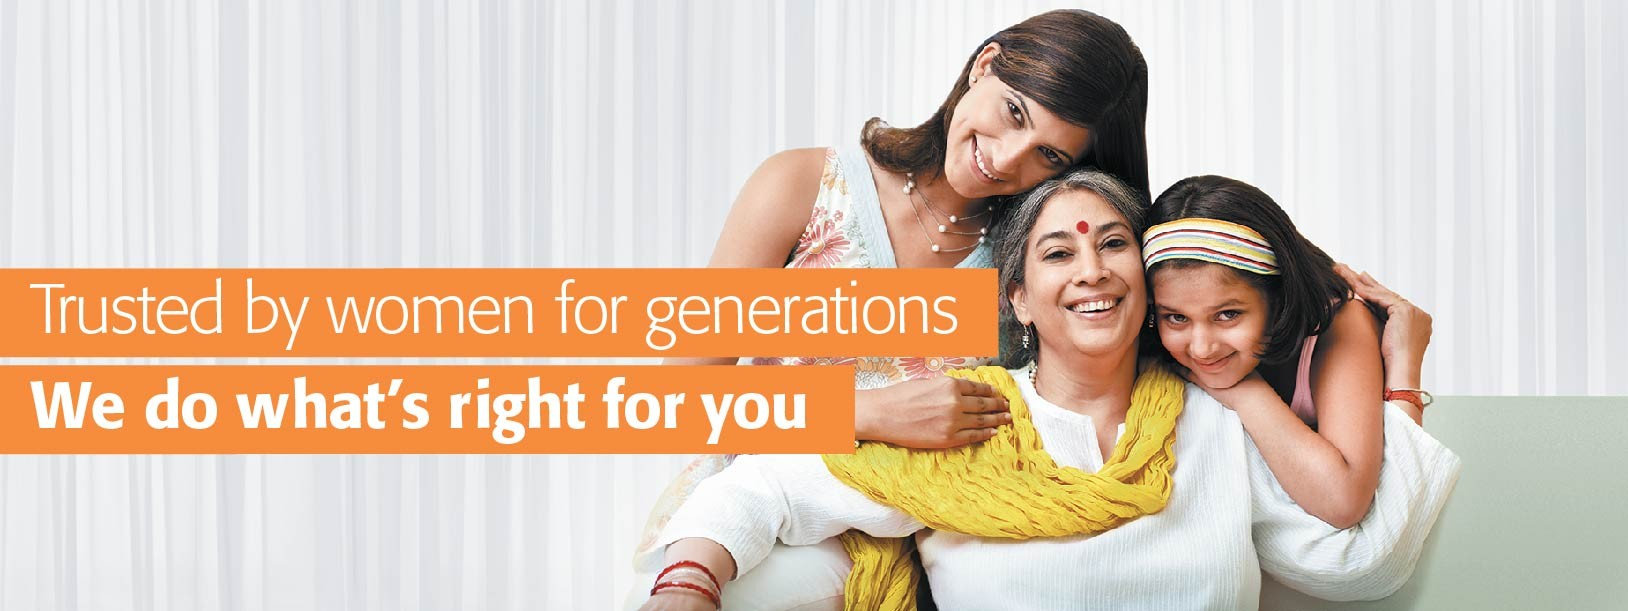 trusted by women for generations we do what's right for you